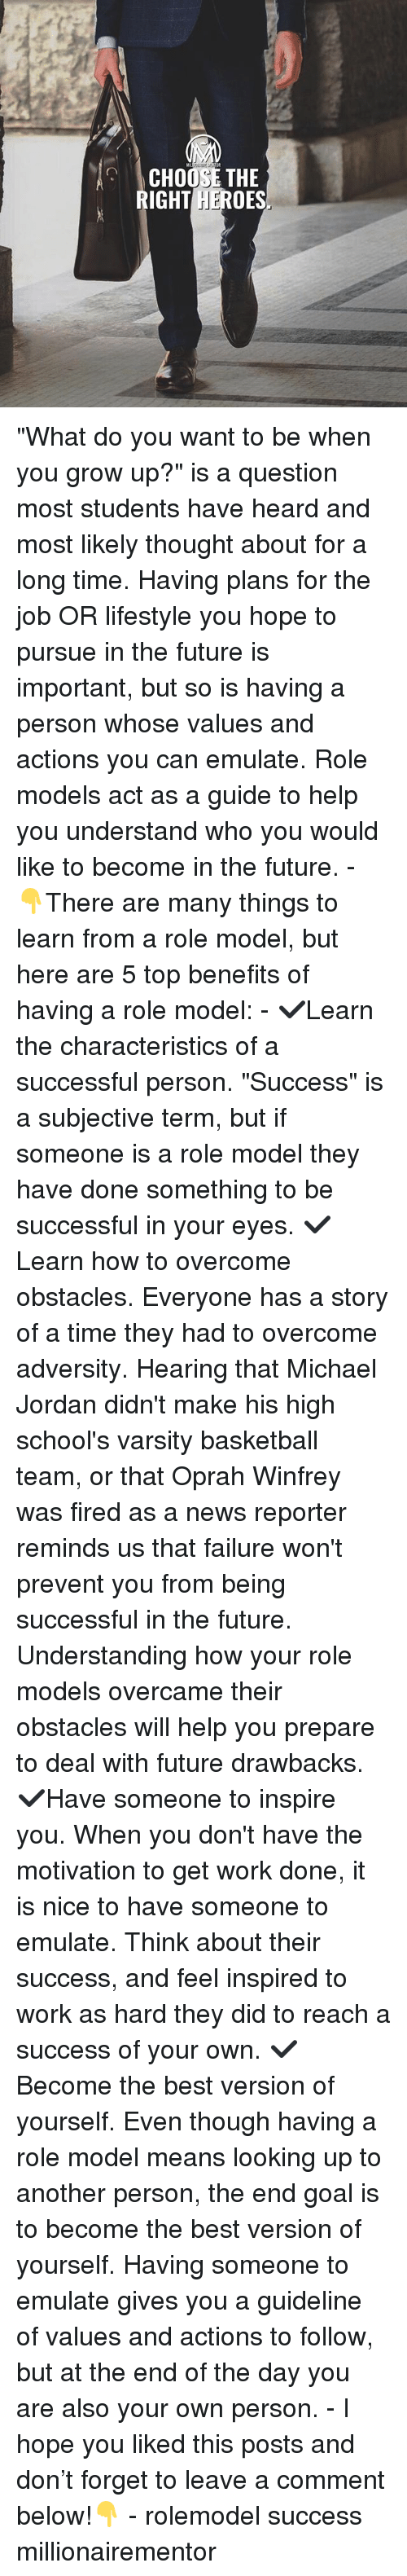 """Basketball, Future, and Memes: OR  CHOOSE THE  RIGHTROES  HE """"What do you want to be when you grow up?"""" is a question most students have heard and most likely thought about for a long time. Having plans for the job OR lifestyle you hope to pursue in the future is important, but so is having a person whose values and actions you can emulate. Role models act as a guide to help you understand who you would like to become in the future. - 👇There are many things to learn from a role model, but here are 5 top benefits of having a role model: - ✔️Learn the characteristics of a successful person. """"Success"""" is a subjective term, but if someone is a role model they have done something to be successful in your eyes. ✔️Learn how to overcome obstacles. Everyone has a story of a time they had to overcome adversity. Hearing that Michael Jordan didn't make his high school's varsity basketball team, or that Oprah Winfrey was fired as a news reporter reminds us that failure won't prevent you from being successful in the future. Understanding how your role models overcame their obstacles will help you prepare to deal with future drawbacks. ✔️Have someone to inspire you. When you don't have the motivation to get work done, it is nice to have someone to emulate. Think about their success, and feel inspired to work as hard they did to reach a success of your own. ✔️Become the best version of yourself. Even though having a role model means looking up to another person, the end goal is to become the best version of yourself. Having someone to emulate gives you a guideline of values and actions to follow, but at the end of the day you are also your own person. - I hope you liked this posts and don't forget to leave a comment below!👇 - rolemodel success millionairementor"""